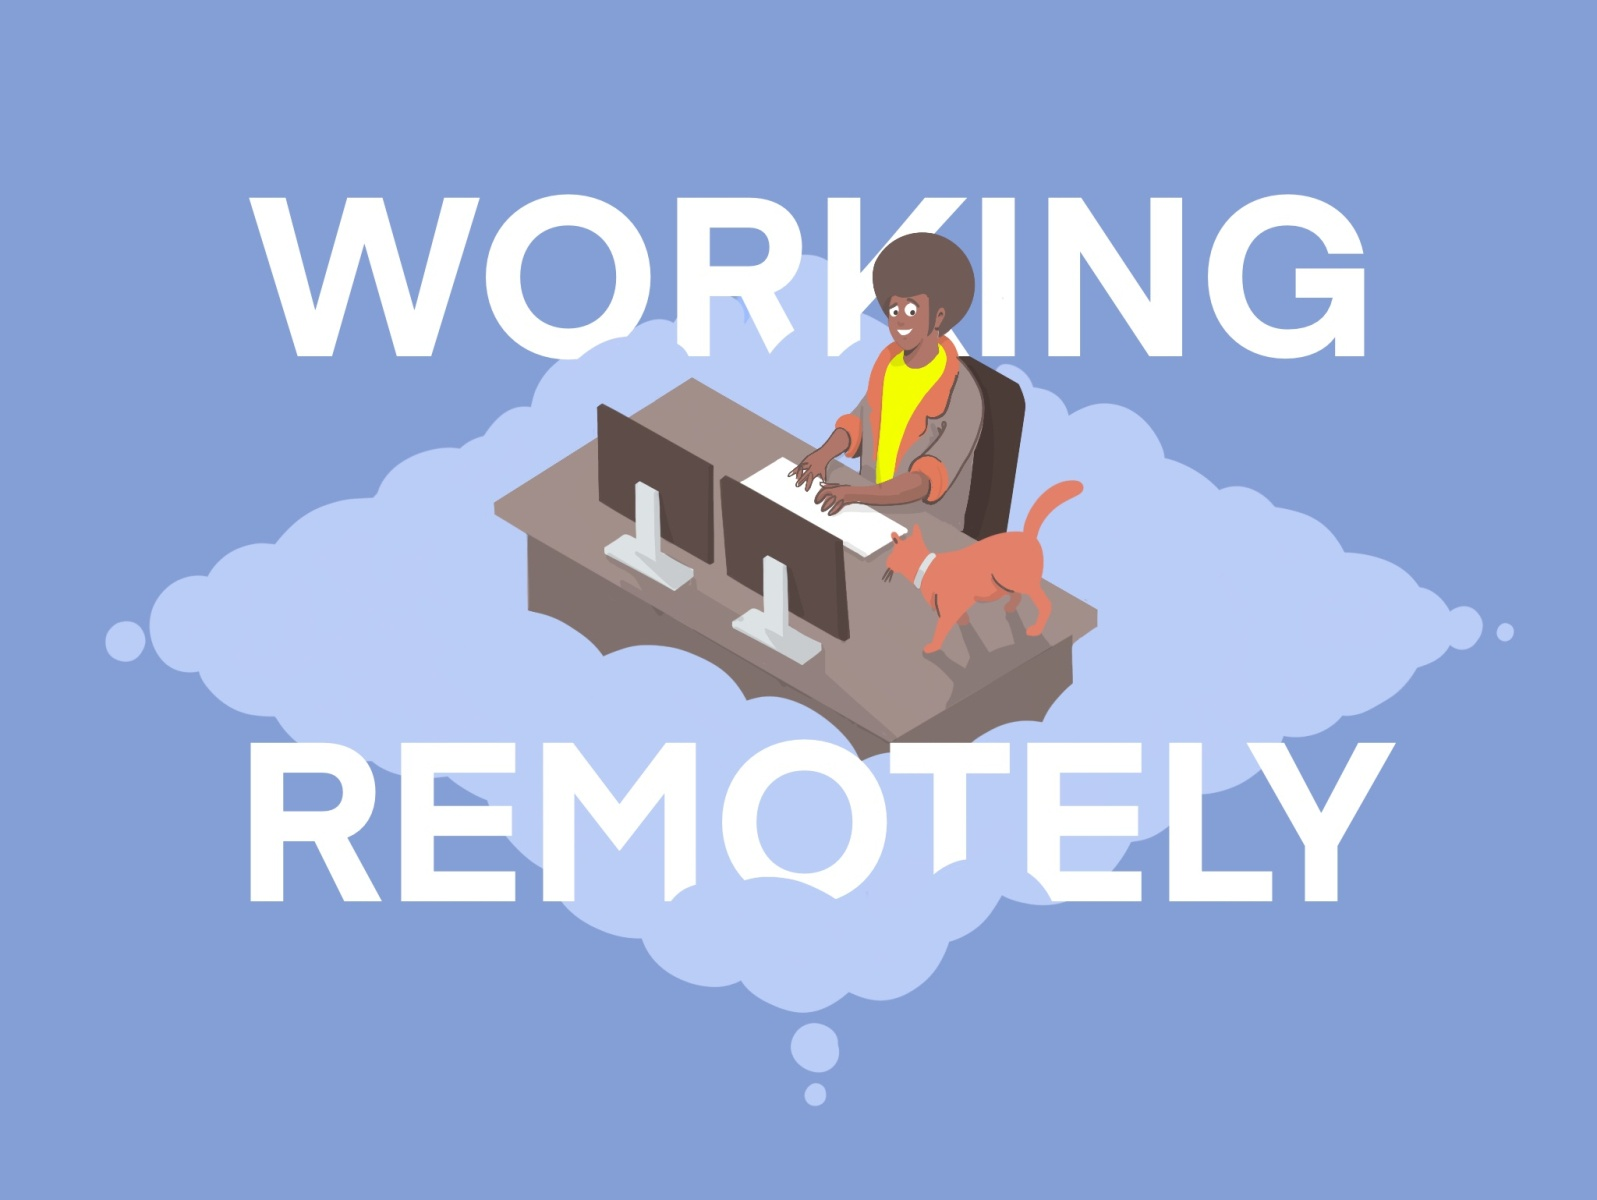 Working Remotely by Brian J Russell